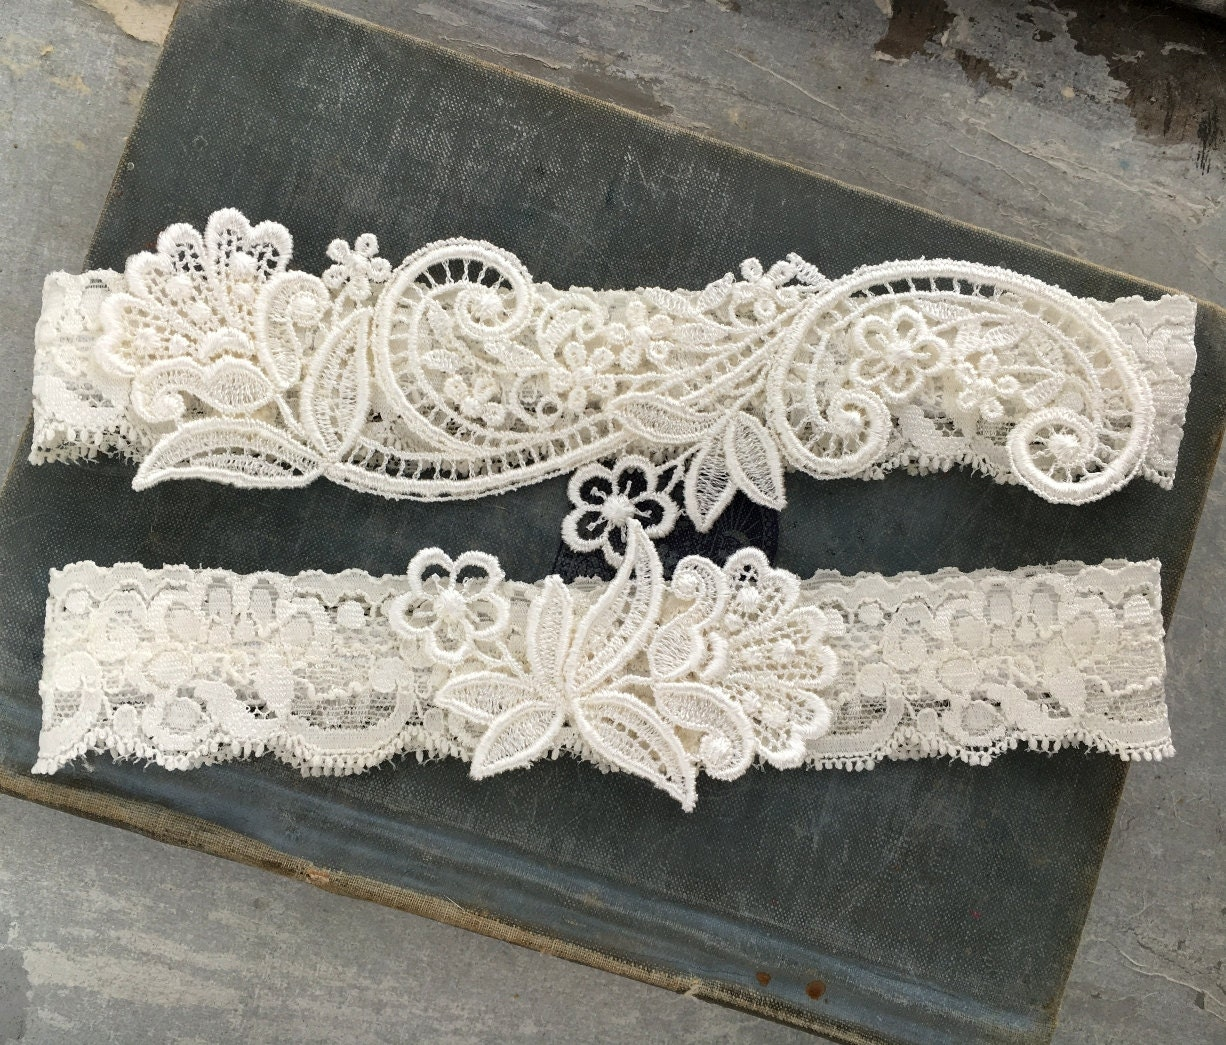 Ivory Garters Wedding: Ivory Lace Wedding Garter Set Lace Bridal Garter Vintage